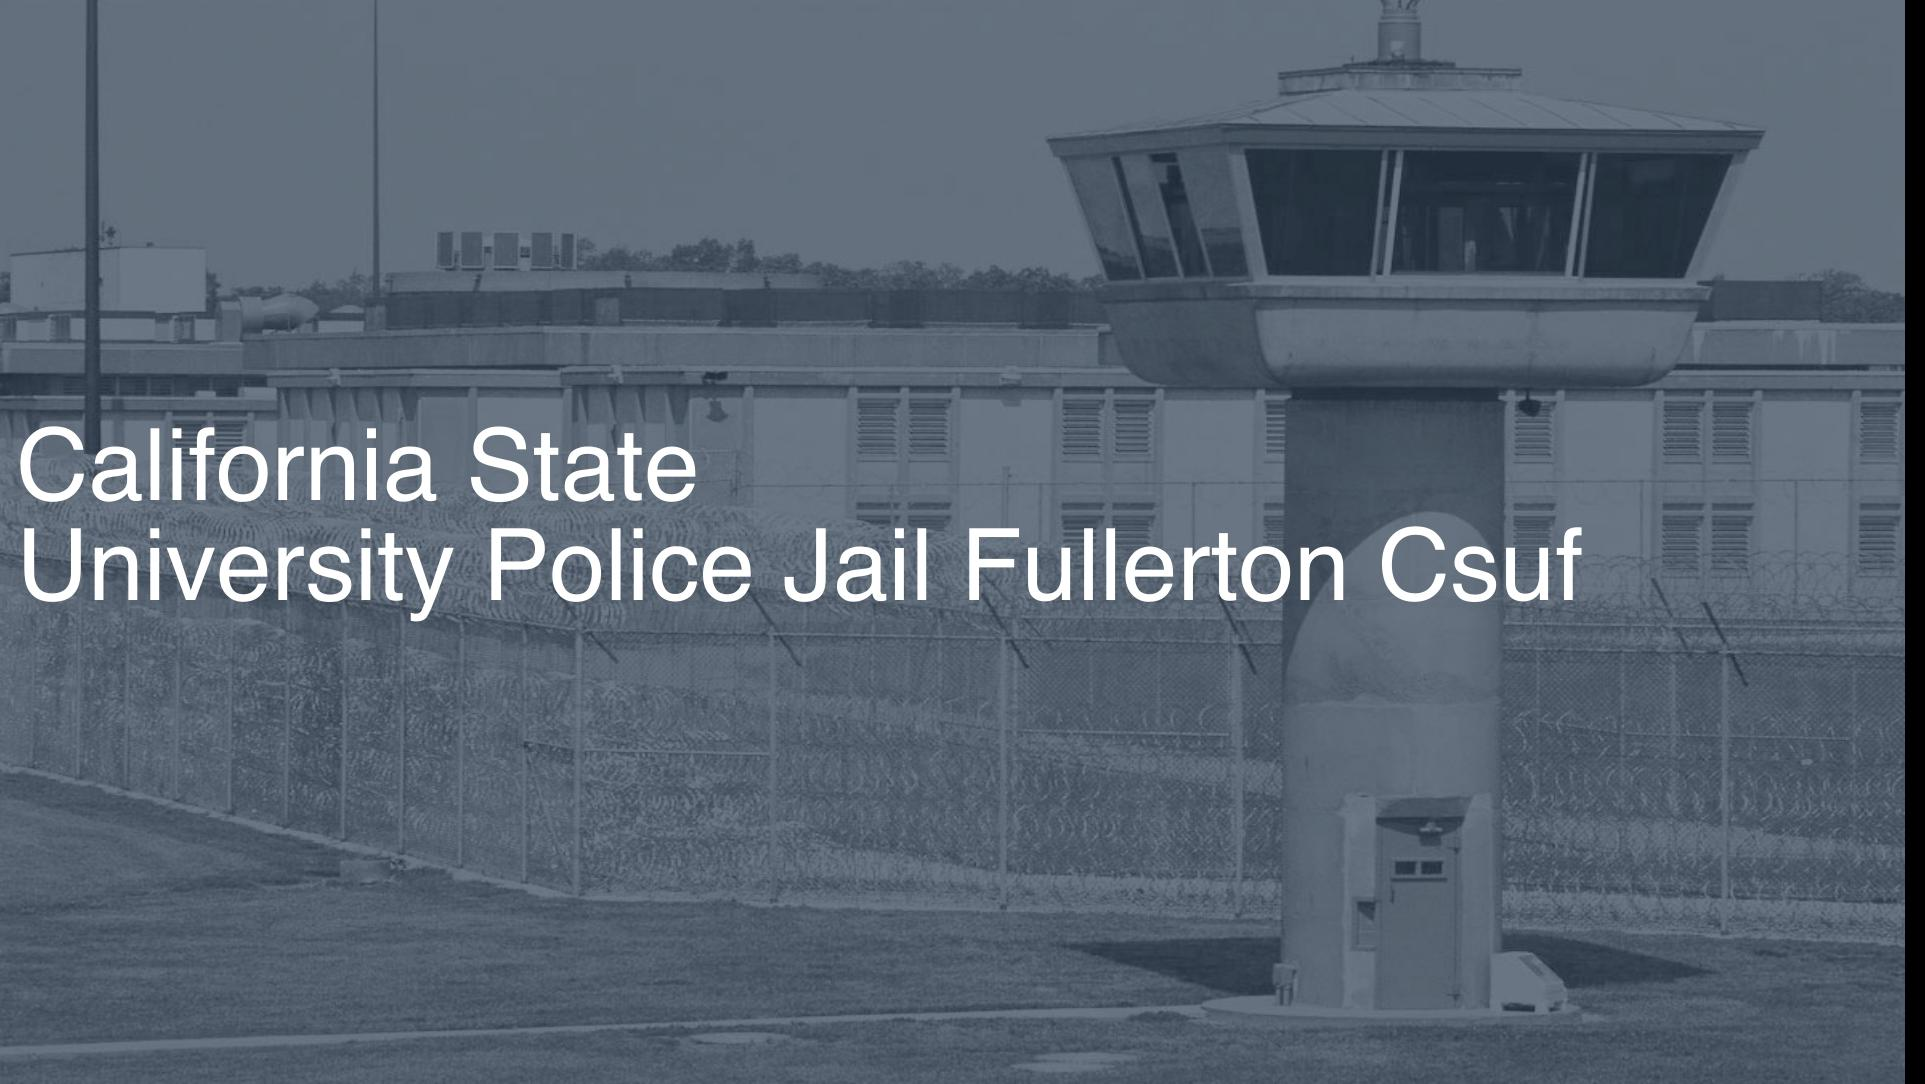 California State University Police Jail - Fullerton (CSUF) correctional facility picture